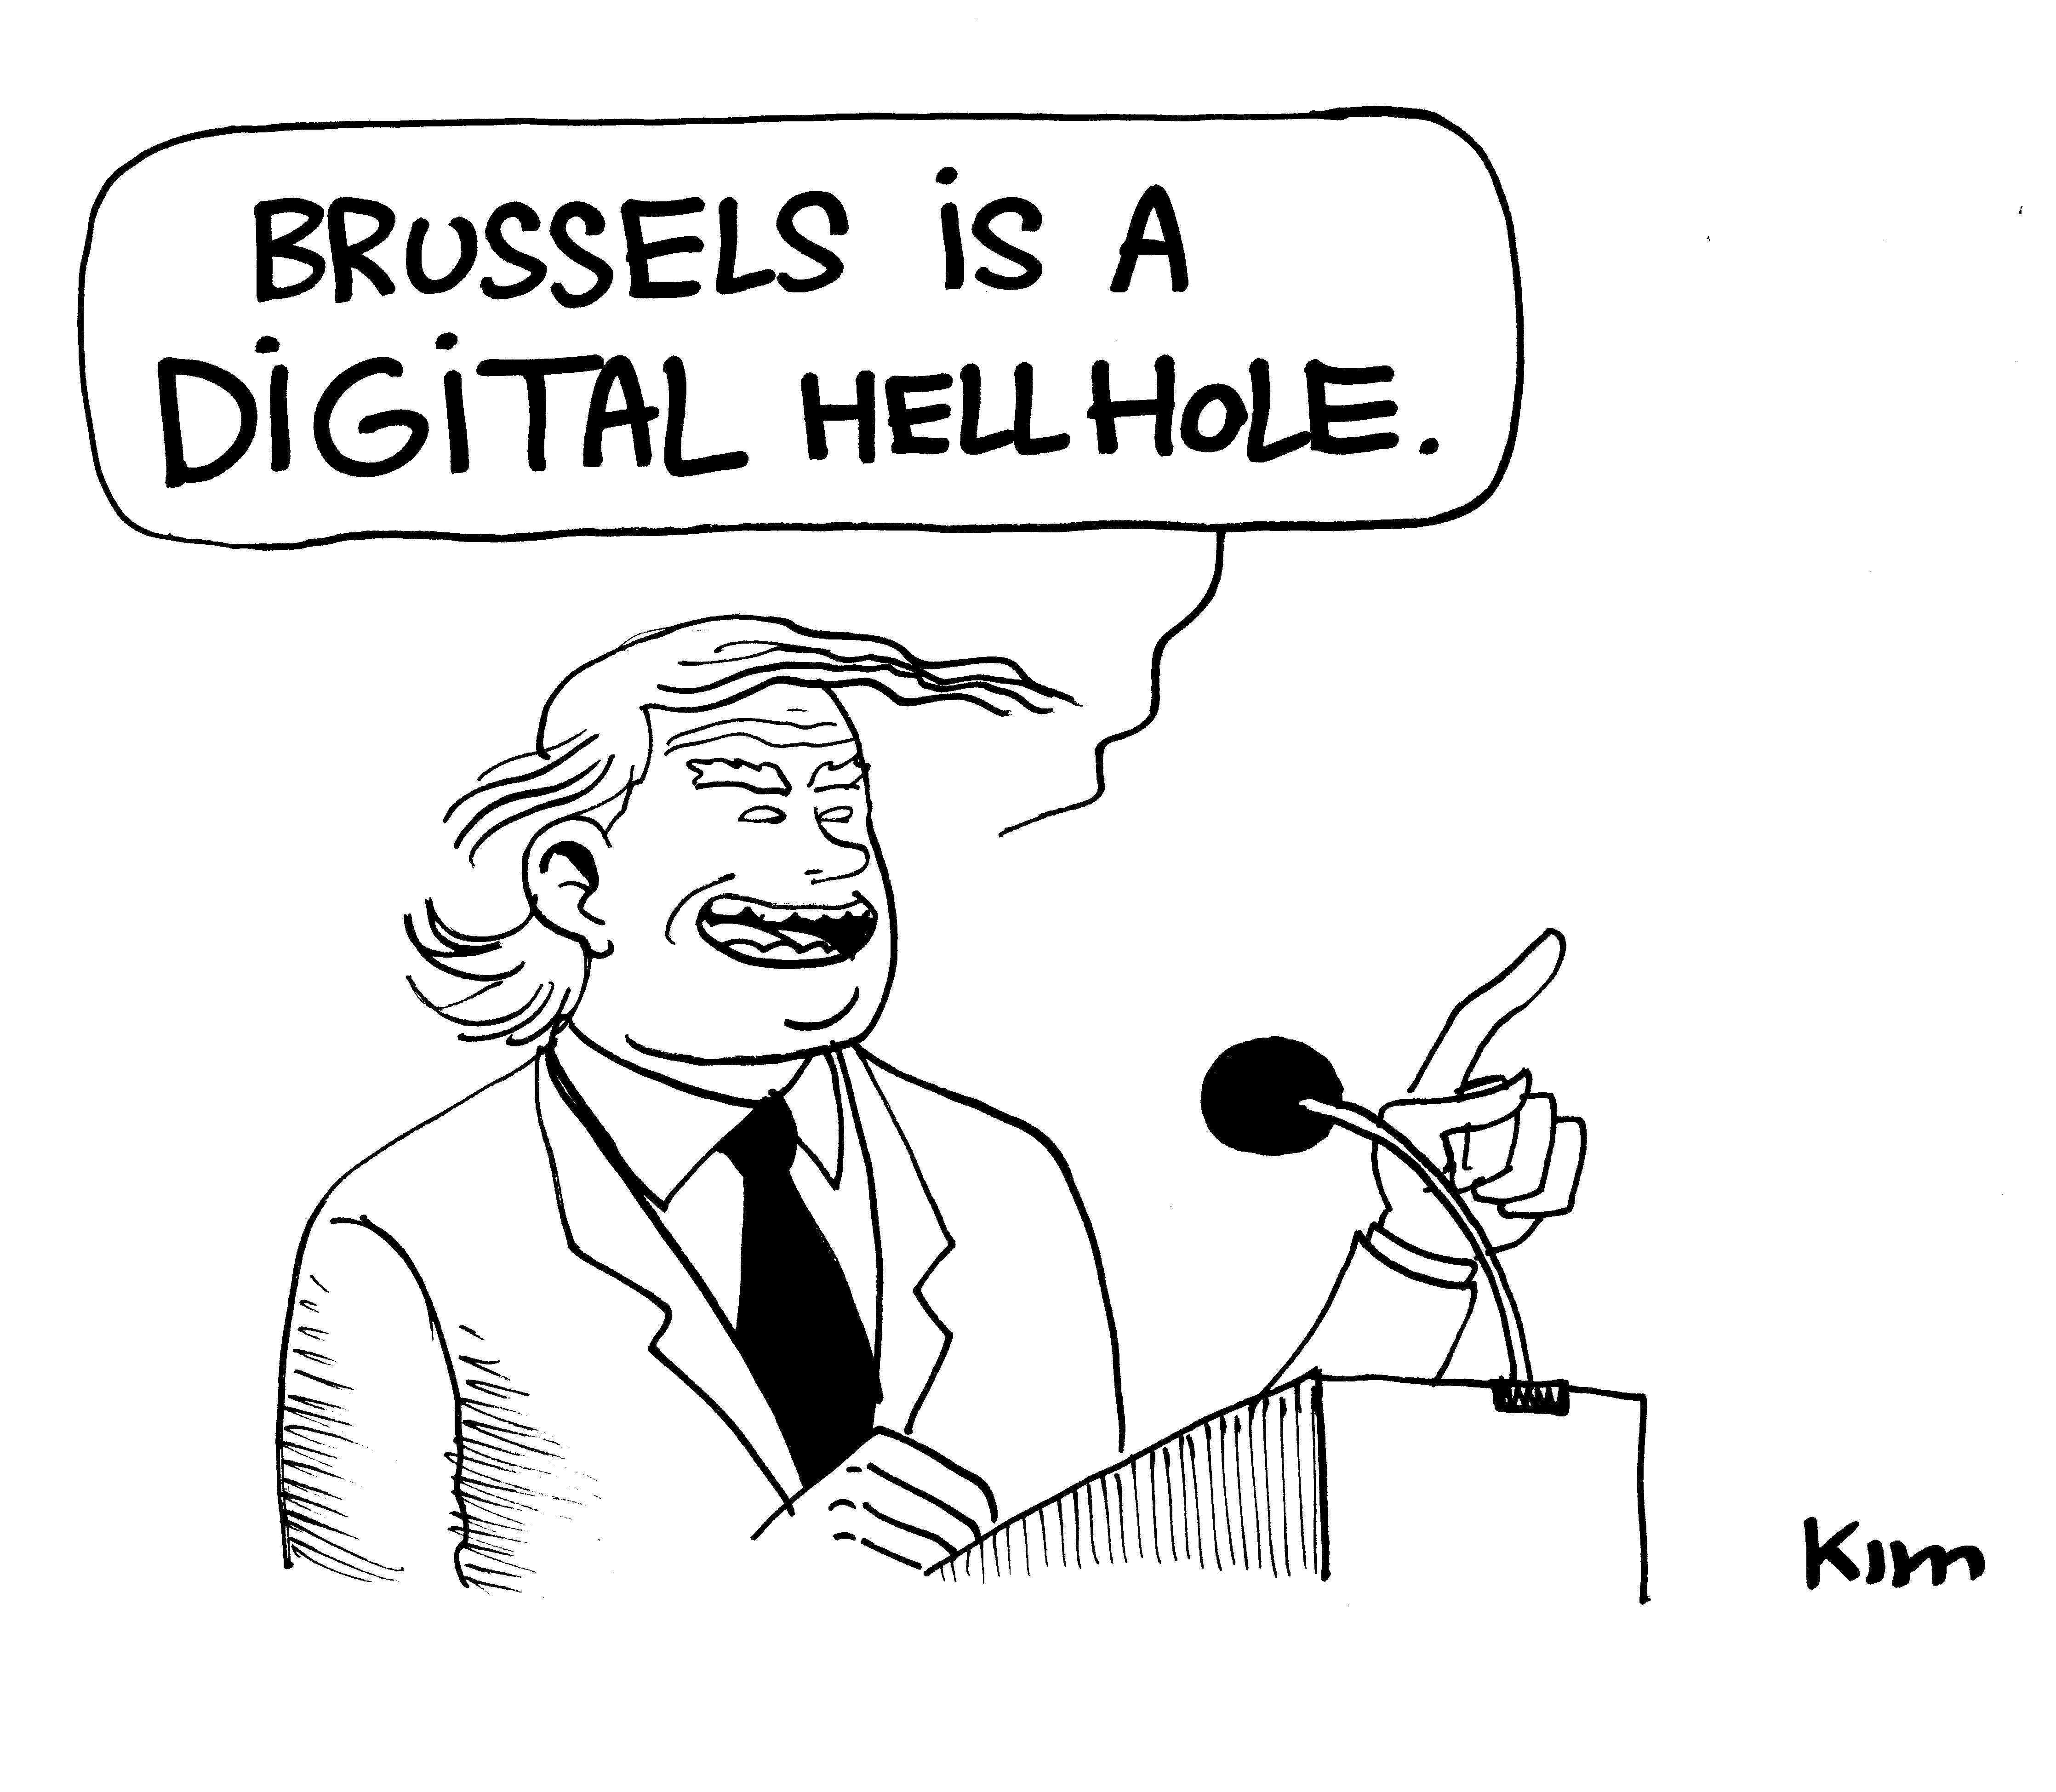 Brussels is a digital hell hole